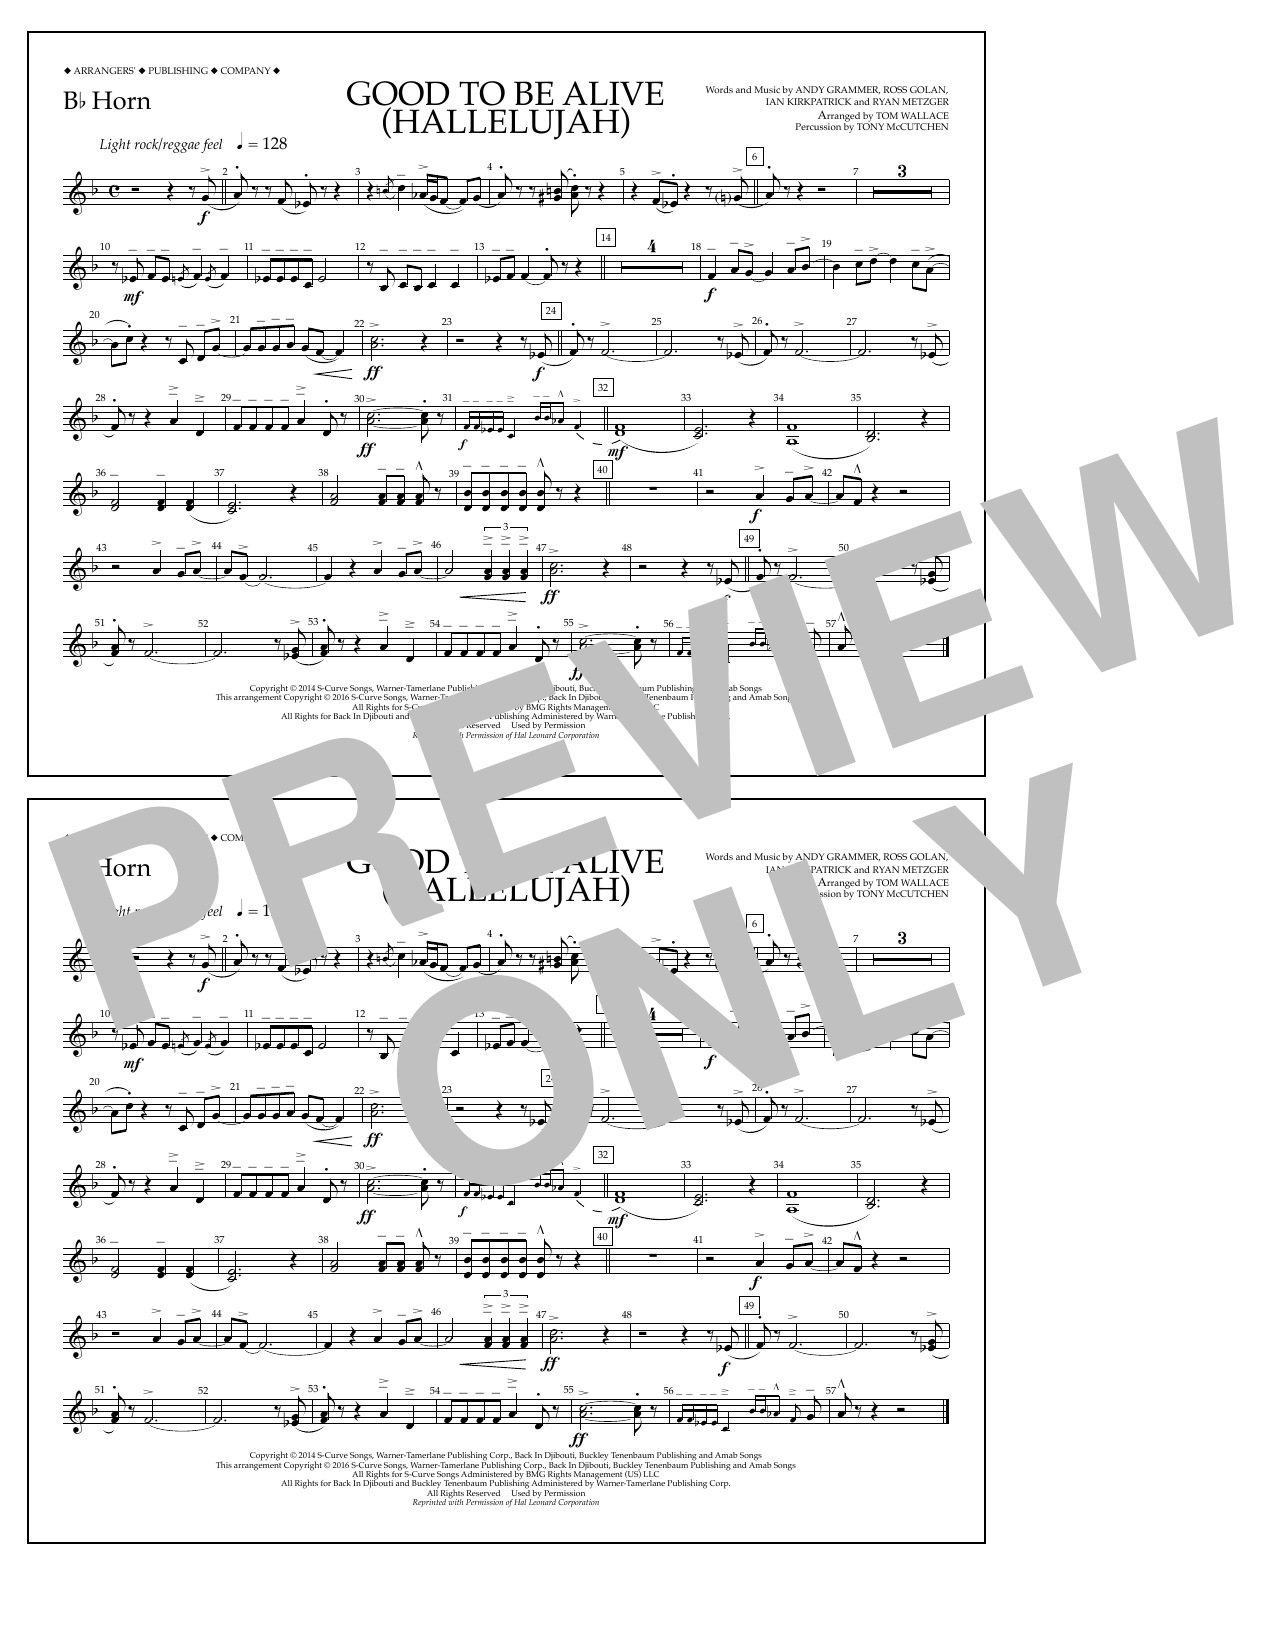 Good to Be Alive (Hallelujah) - Bb Horn Sheet Music